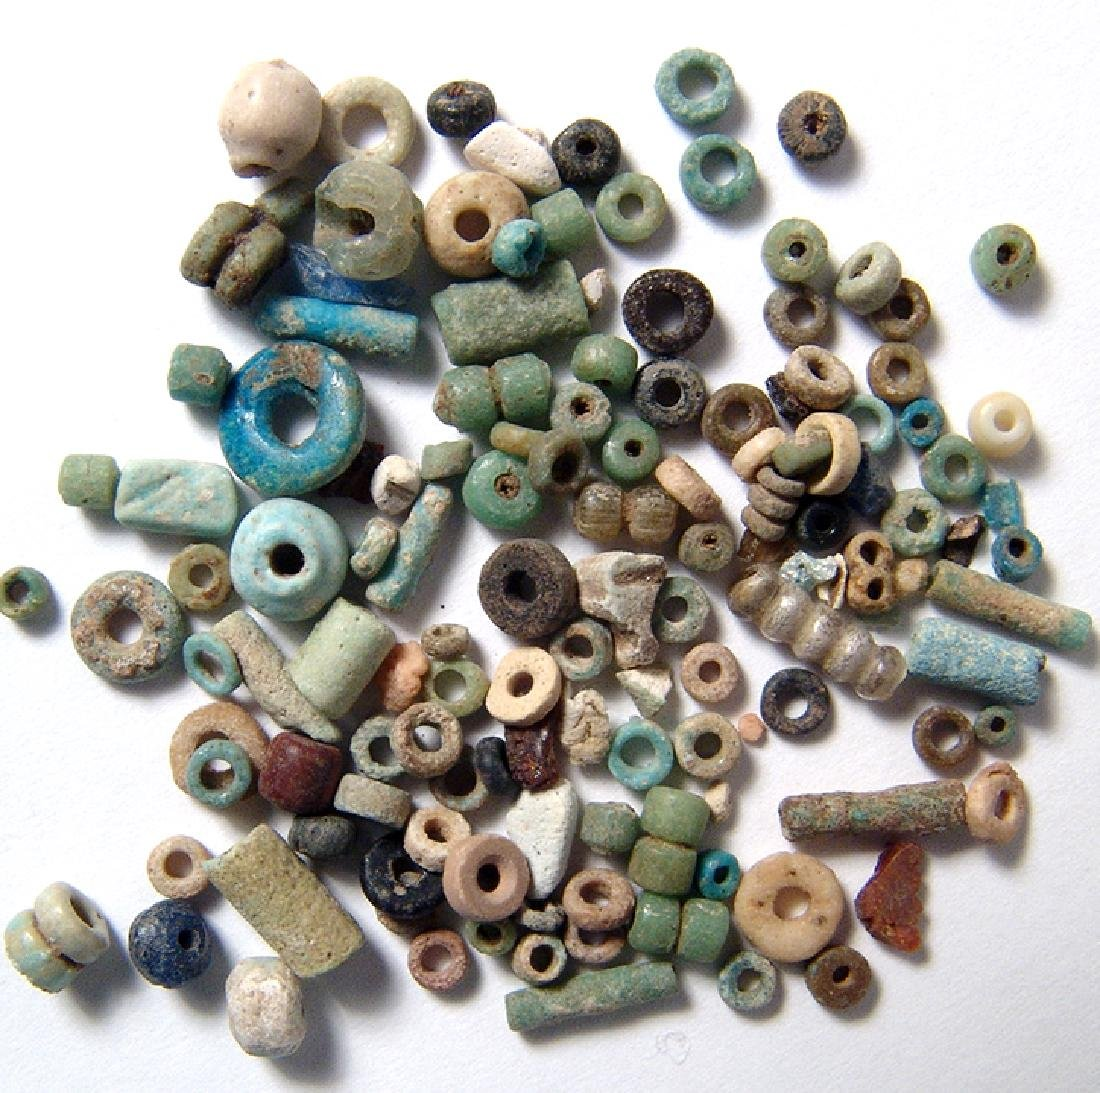 Group of 100 Egyptian multi-colored faience beads